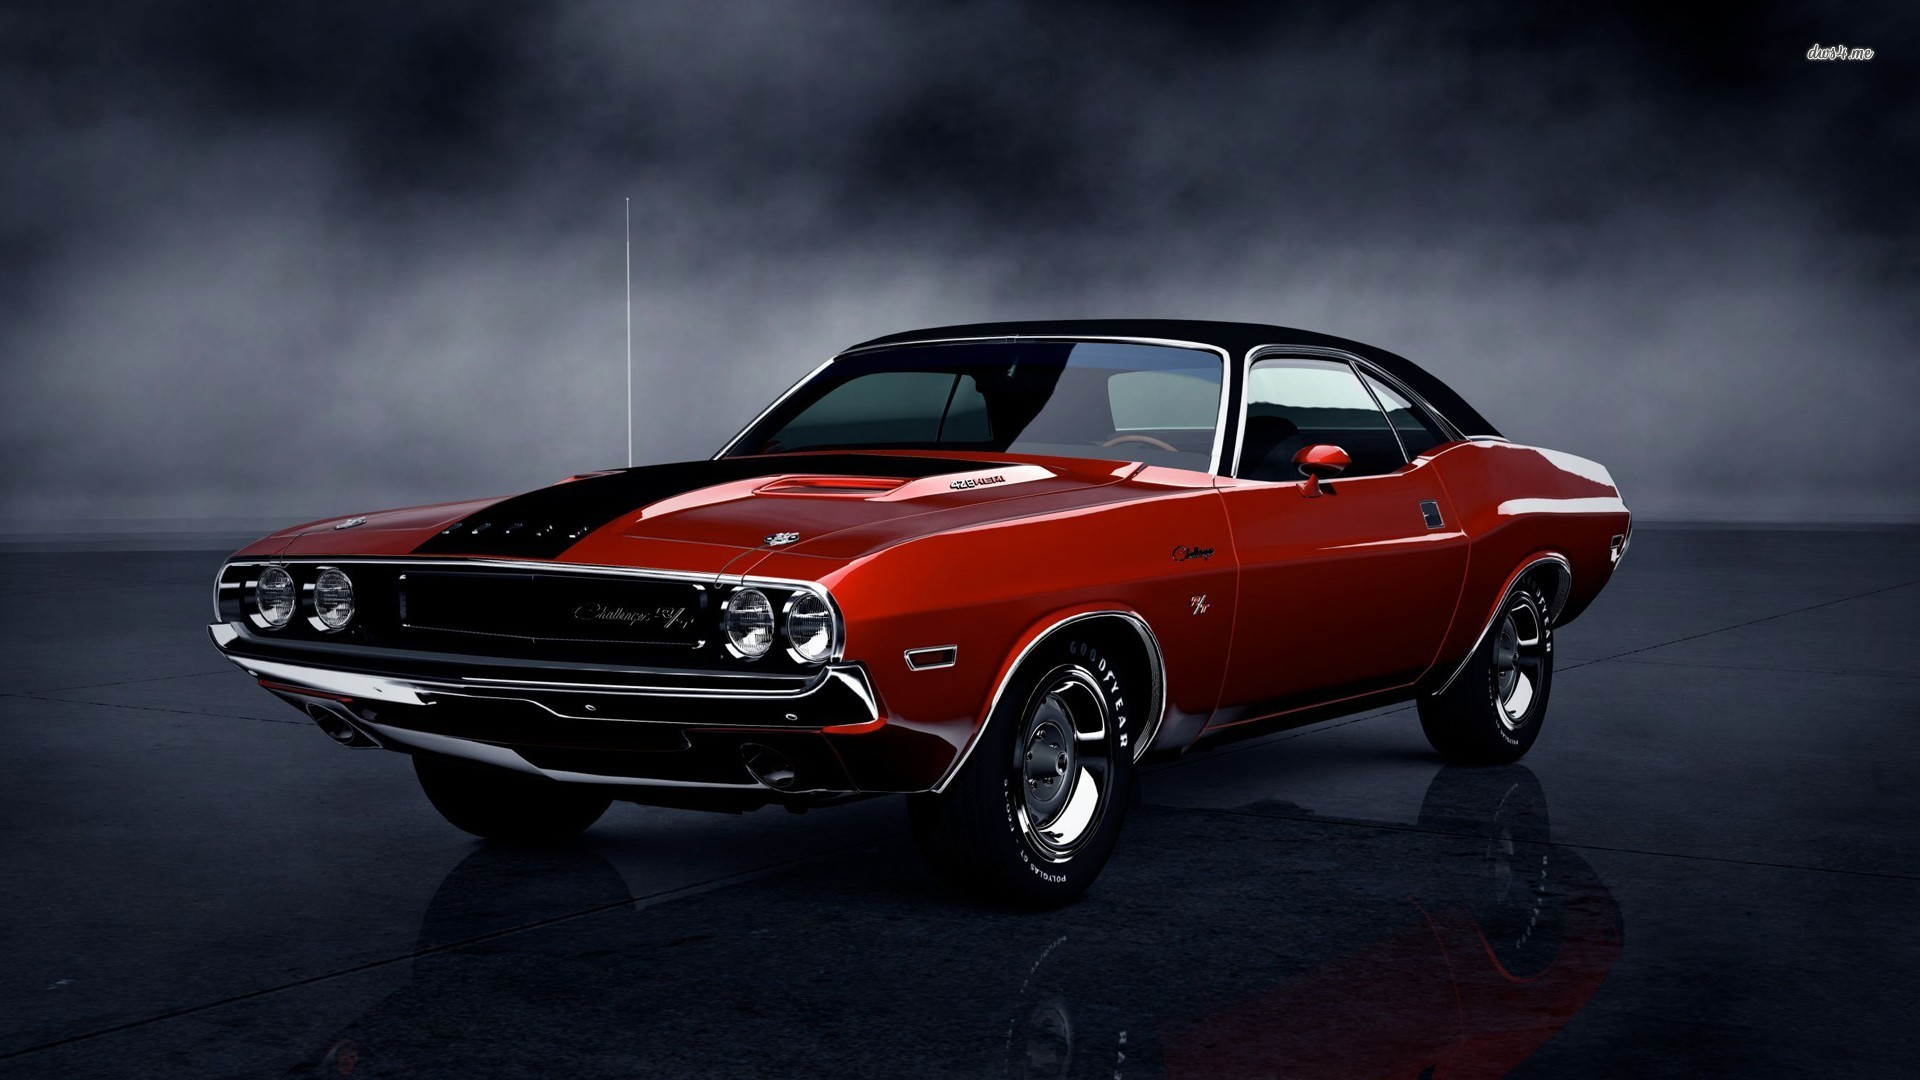 Dodge Challenger BackRelated Car Wallpapers wallpaper 1920x1080